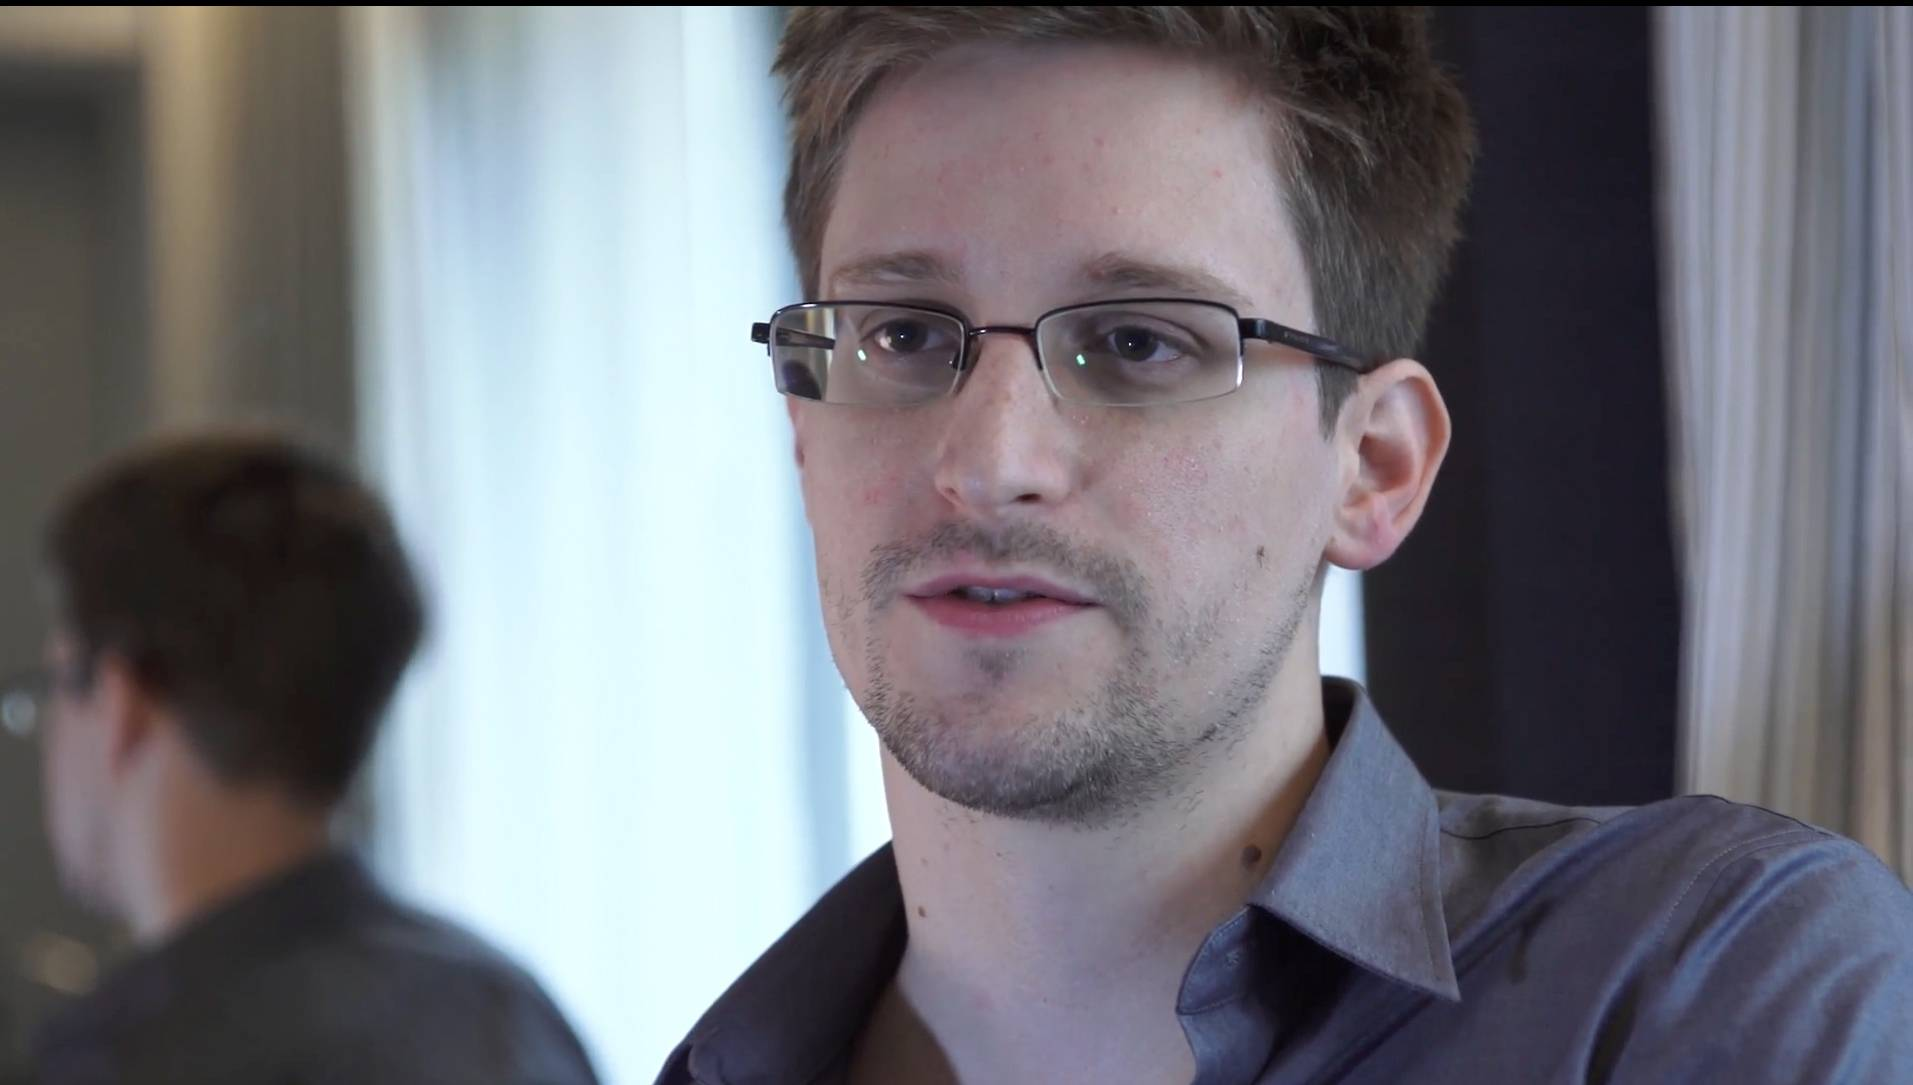 This photo provided by The Guardian Newspaper in London shows Edward Snowden, who worked as a contract employee at the National Security Agency, June 9, 2013, in Hong Kong. U.S. intelligence officials are planning an electronic monitoring system that would tap into government, financial and public databases to scan the behavior patterns of many of the 5 million government employees who hold secret clearances, according to current and former officials.